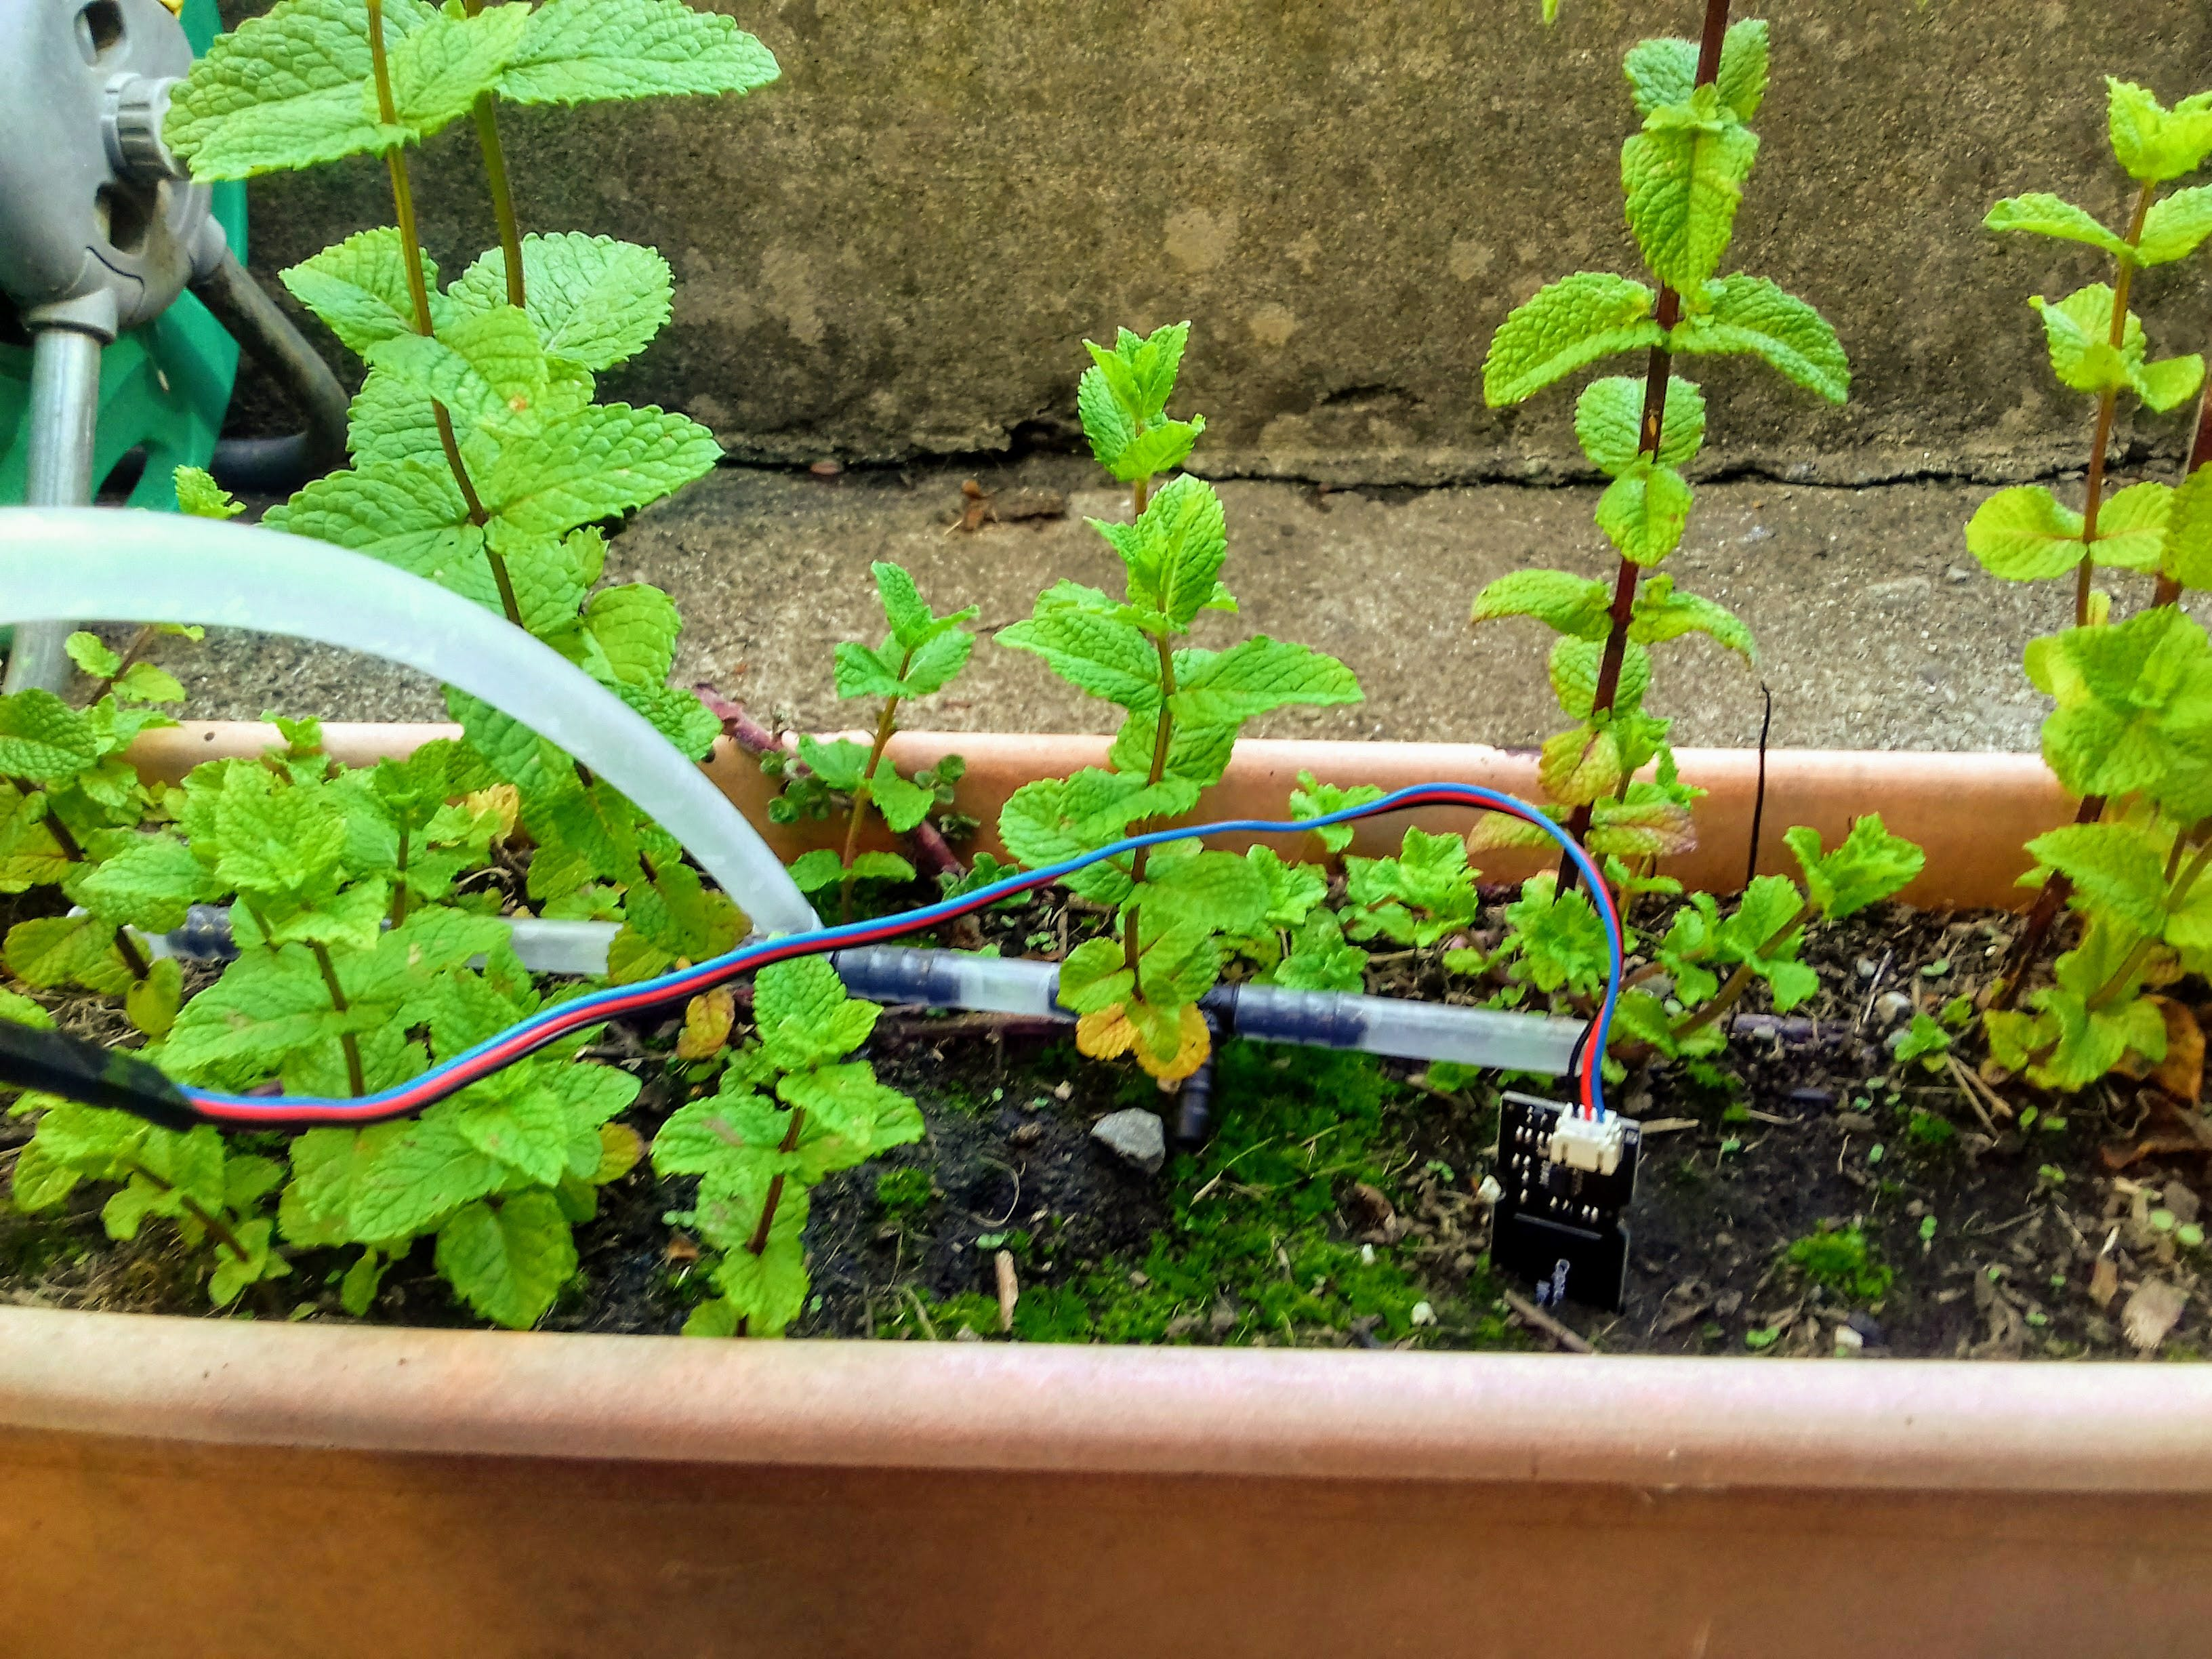 Piping and capacitive soil moisture sensor